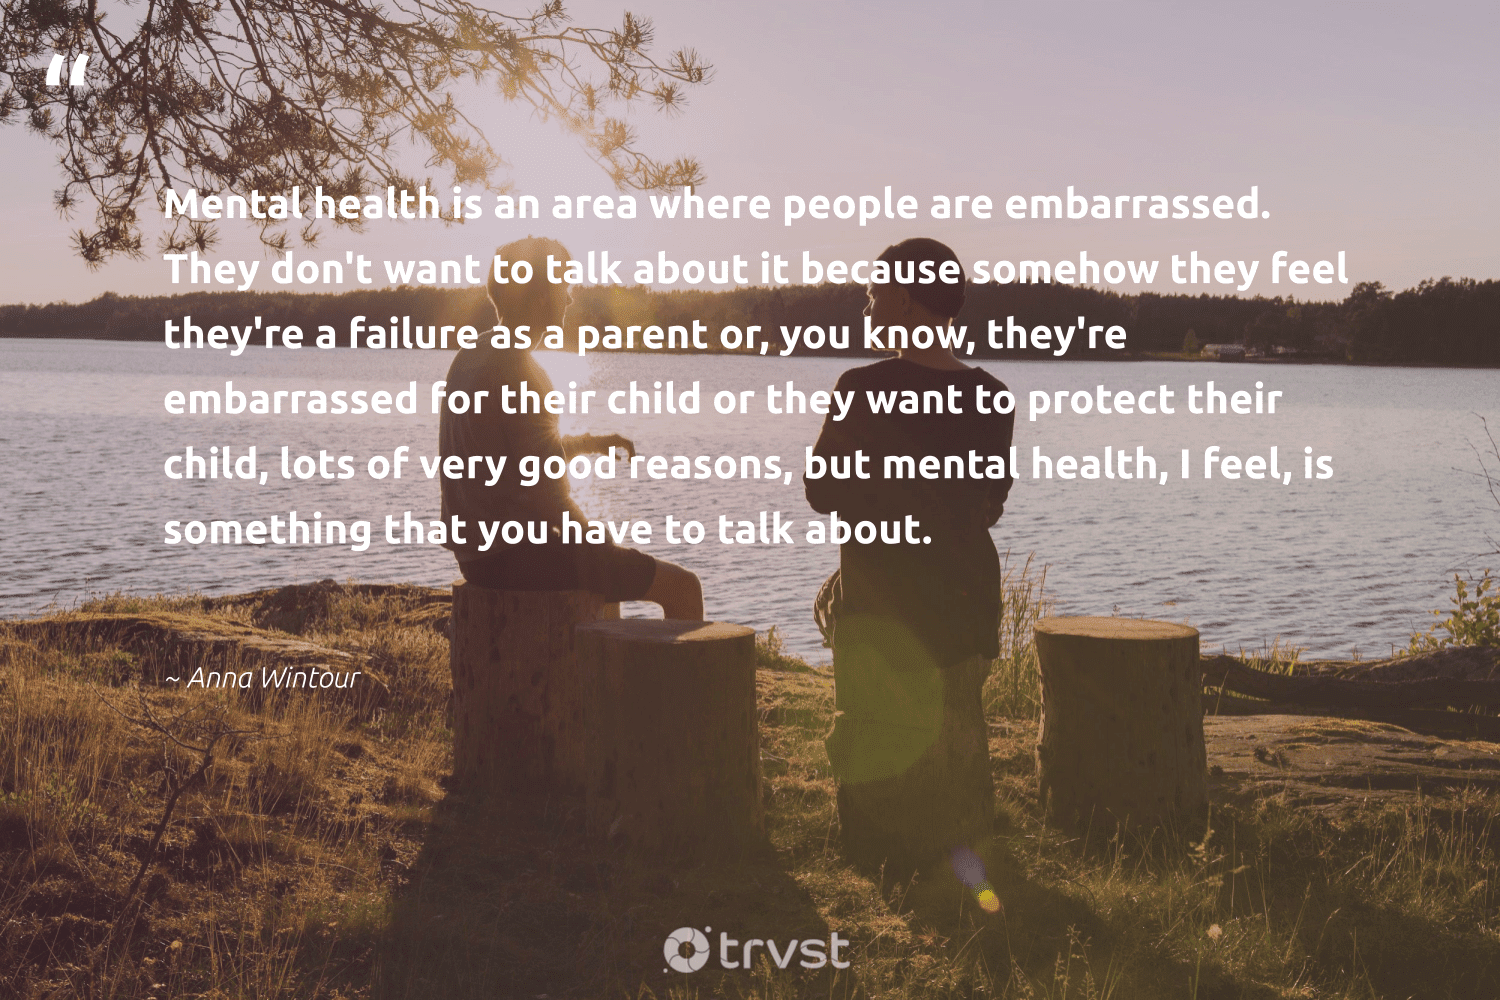 """""""Mental health is an area where people are embarrassed. They don't want to talk about it because somehow they feel they're a failure as a parent or, you know, they're embarrassed for their child or they want to protect their child, lots of very good reasons, but mental health, I feel, is something that you have to talk about.""""  - Anna Wintour #trvst #quotes #mentalhealth #health #mentalhealthawareness #nevergiveup #mindset #bethechange #anxiety #begreat #changemakers #takeaction"""